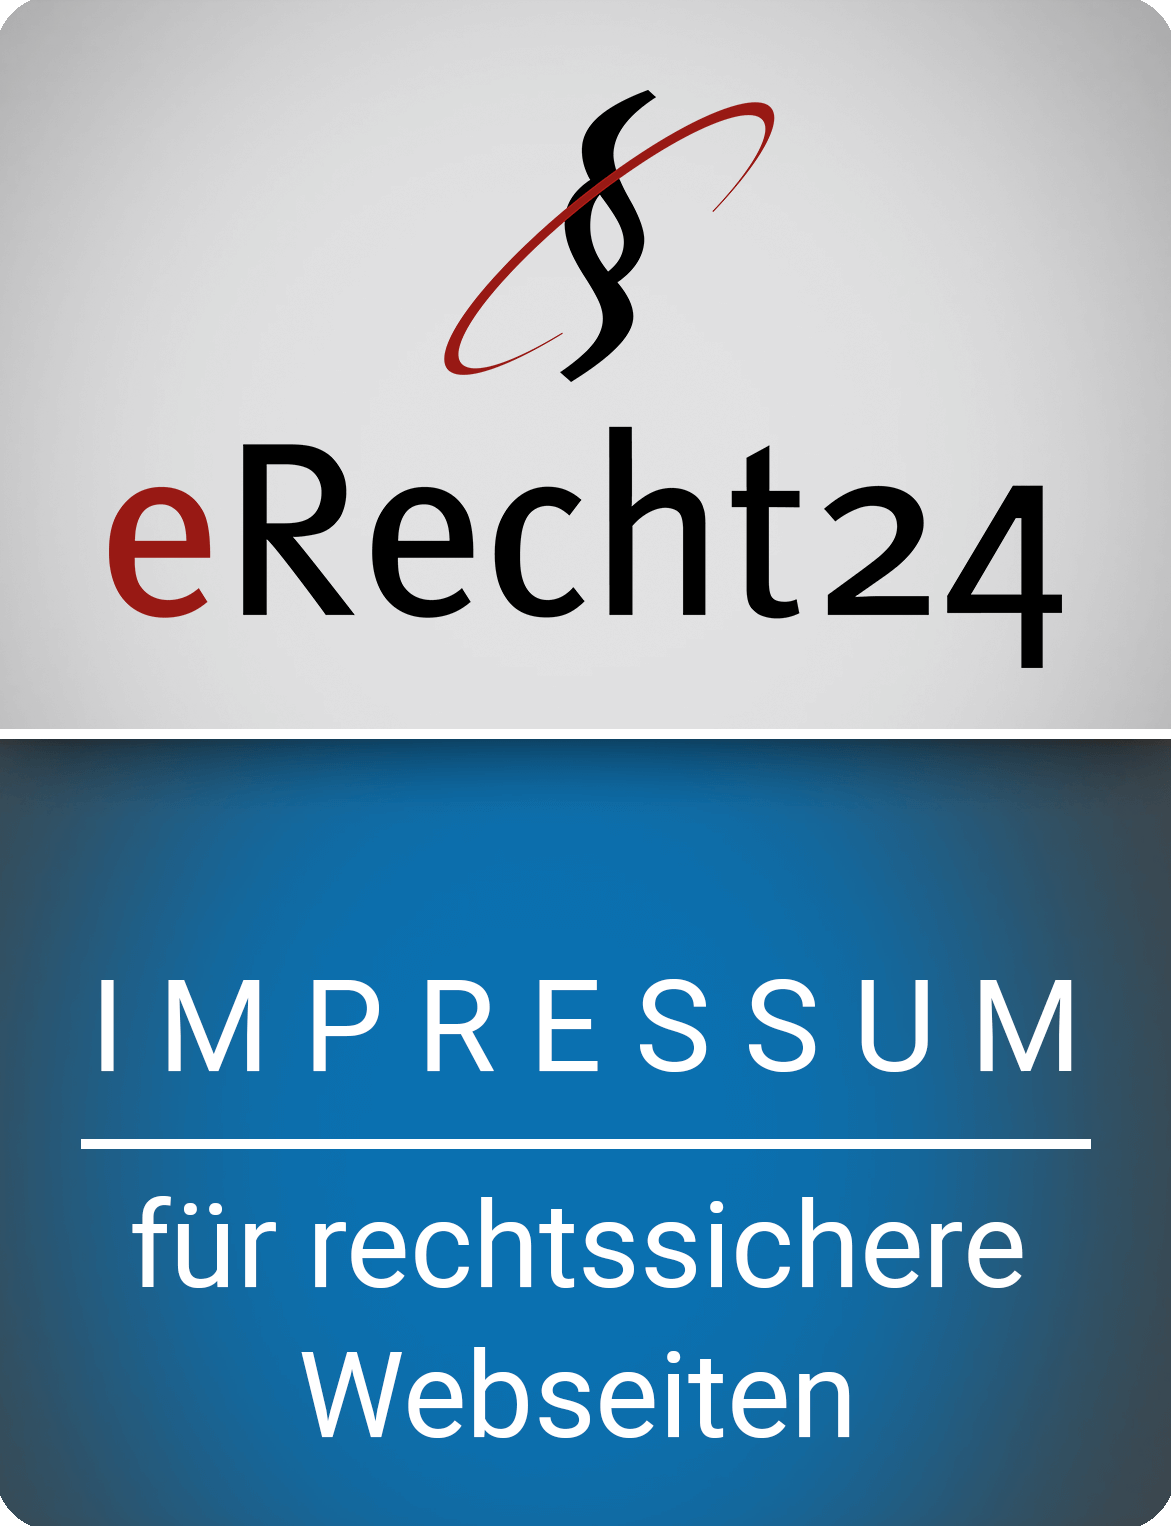 erecht24-siegel-impressum-blau-gross